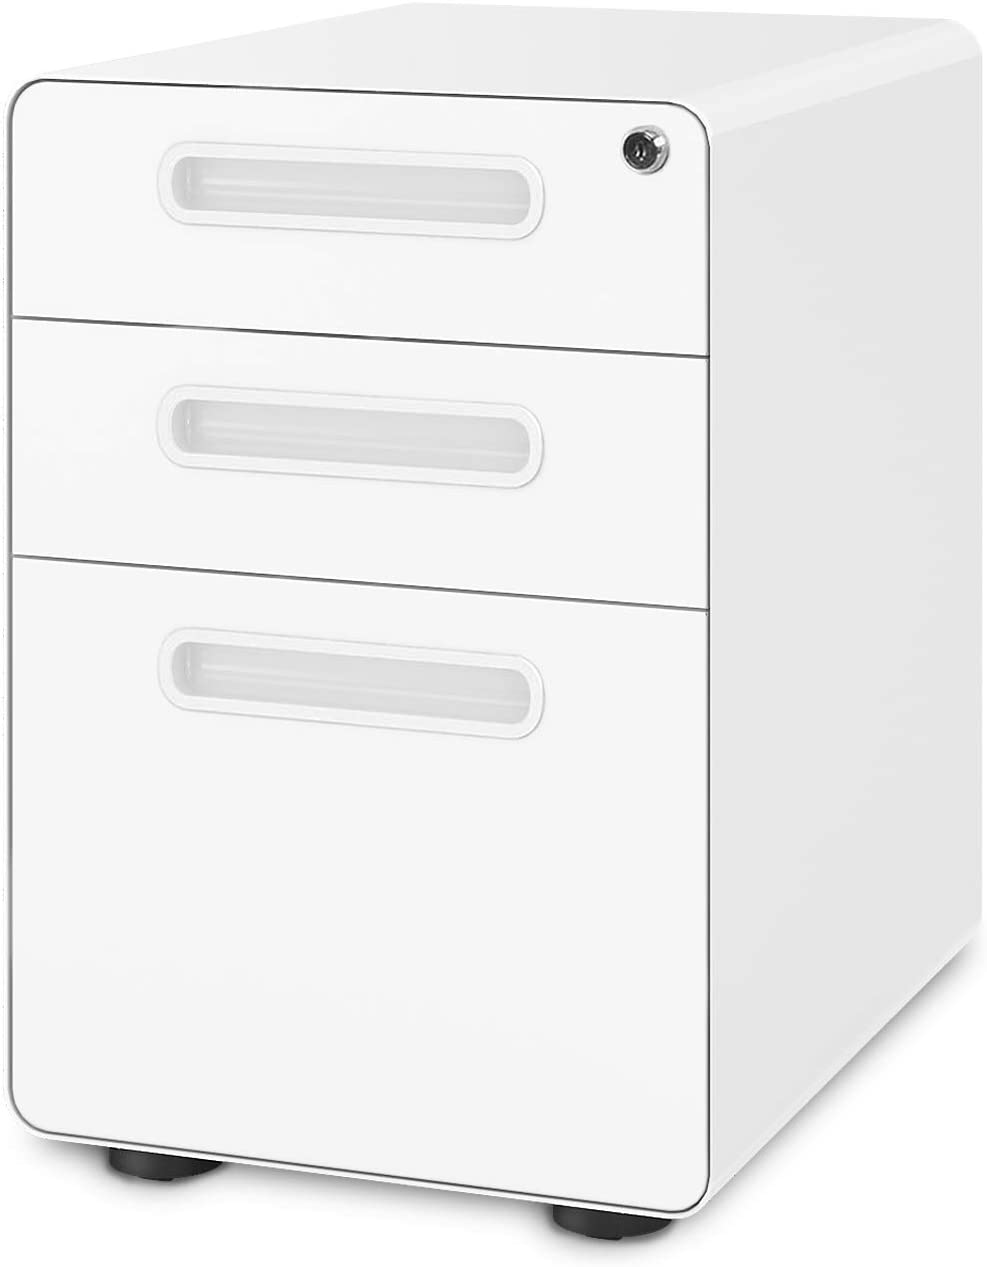 DEVAISE 3-Drawer Mobile File Cabinet with Anti-tilt Mechanism,Legal/Letter Size,White